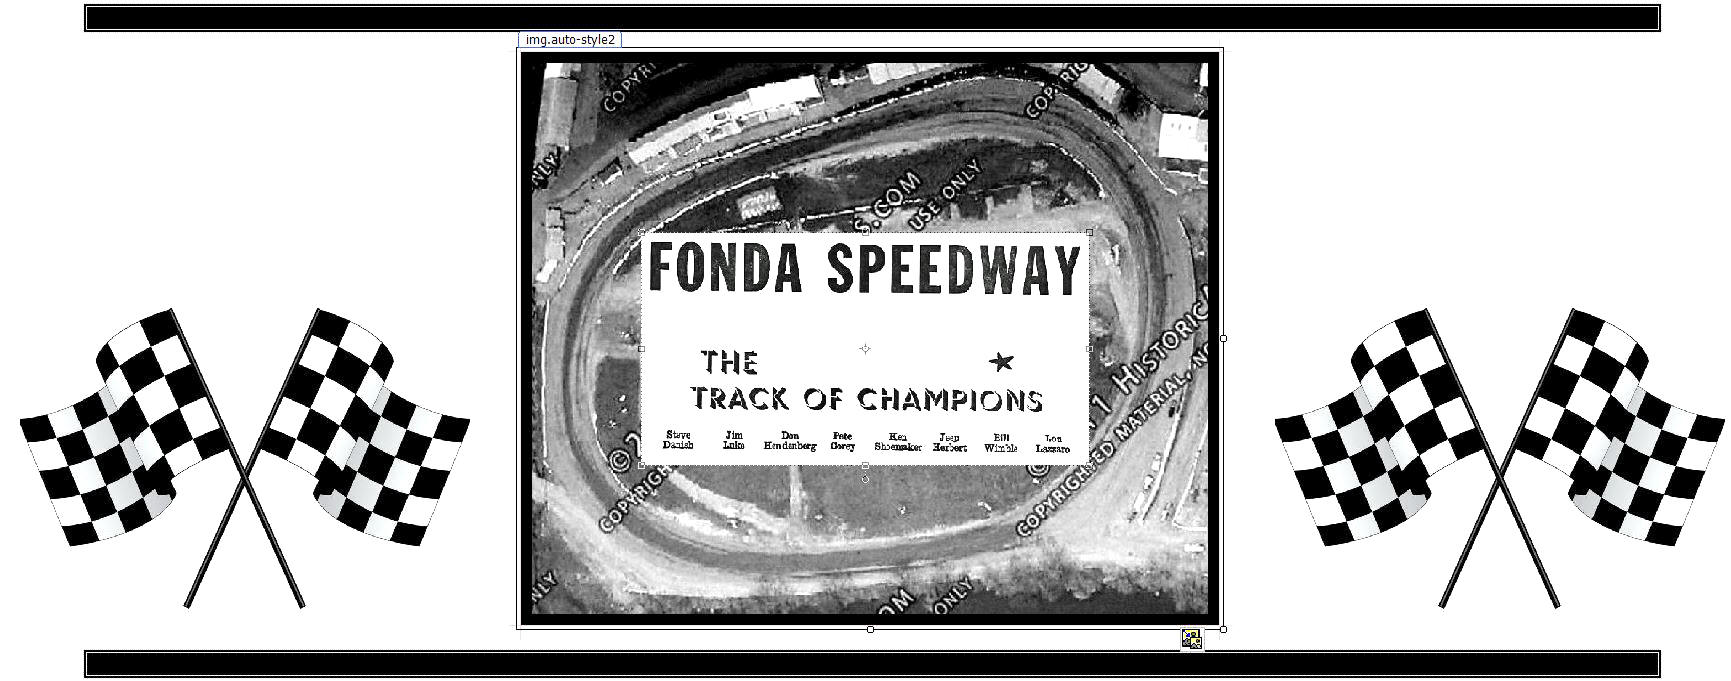 FONDA SPEEDWAY A Premier Track in New York Whose Drivers Often Drove ...